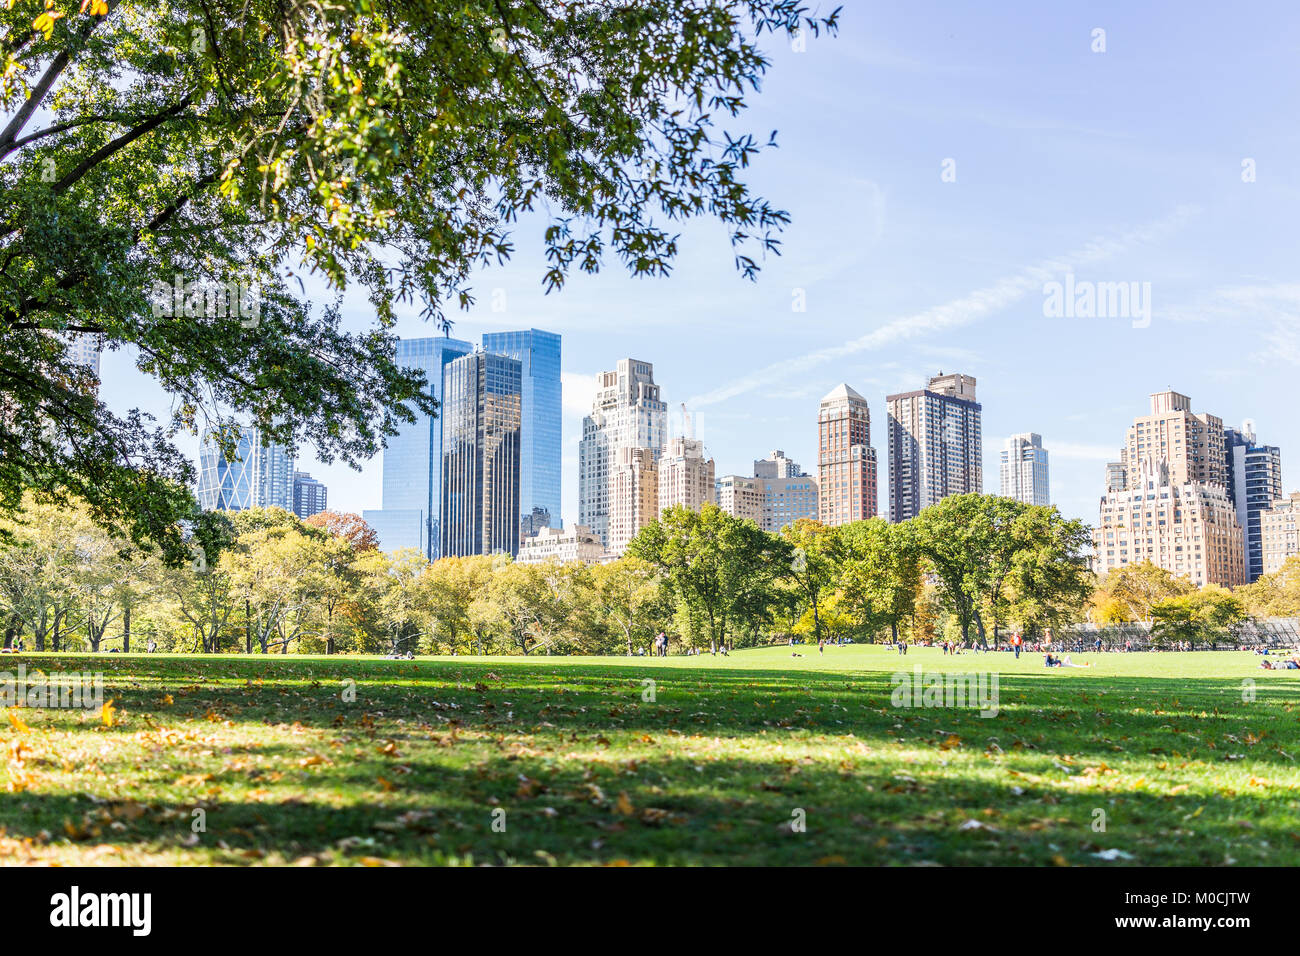 manhattan nyc gro en wiese im central park in new york city mit menschen zu fu auf der gr nen. Black Bedroom Furniture Sets. Home Design Ideas